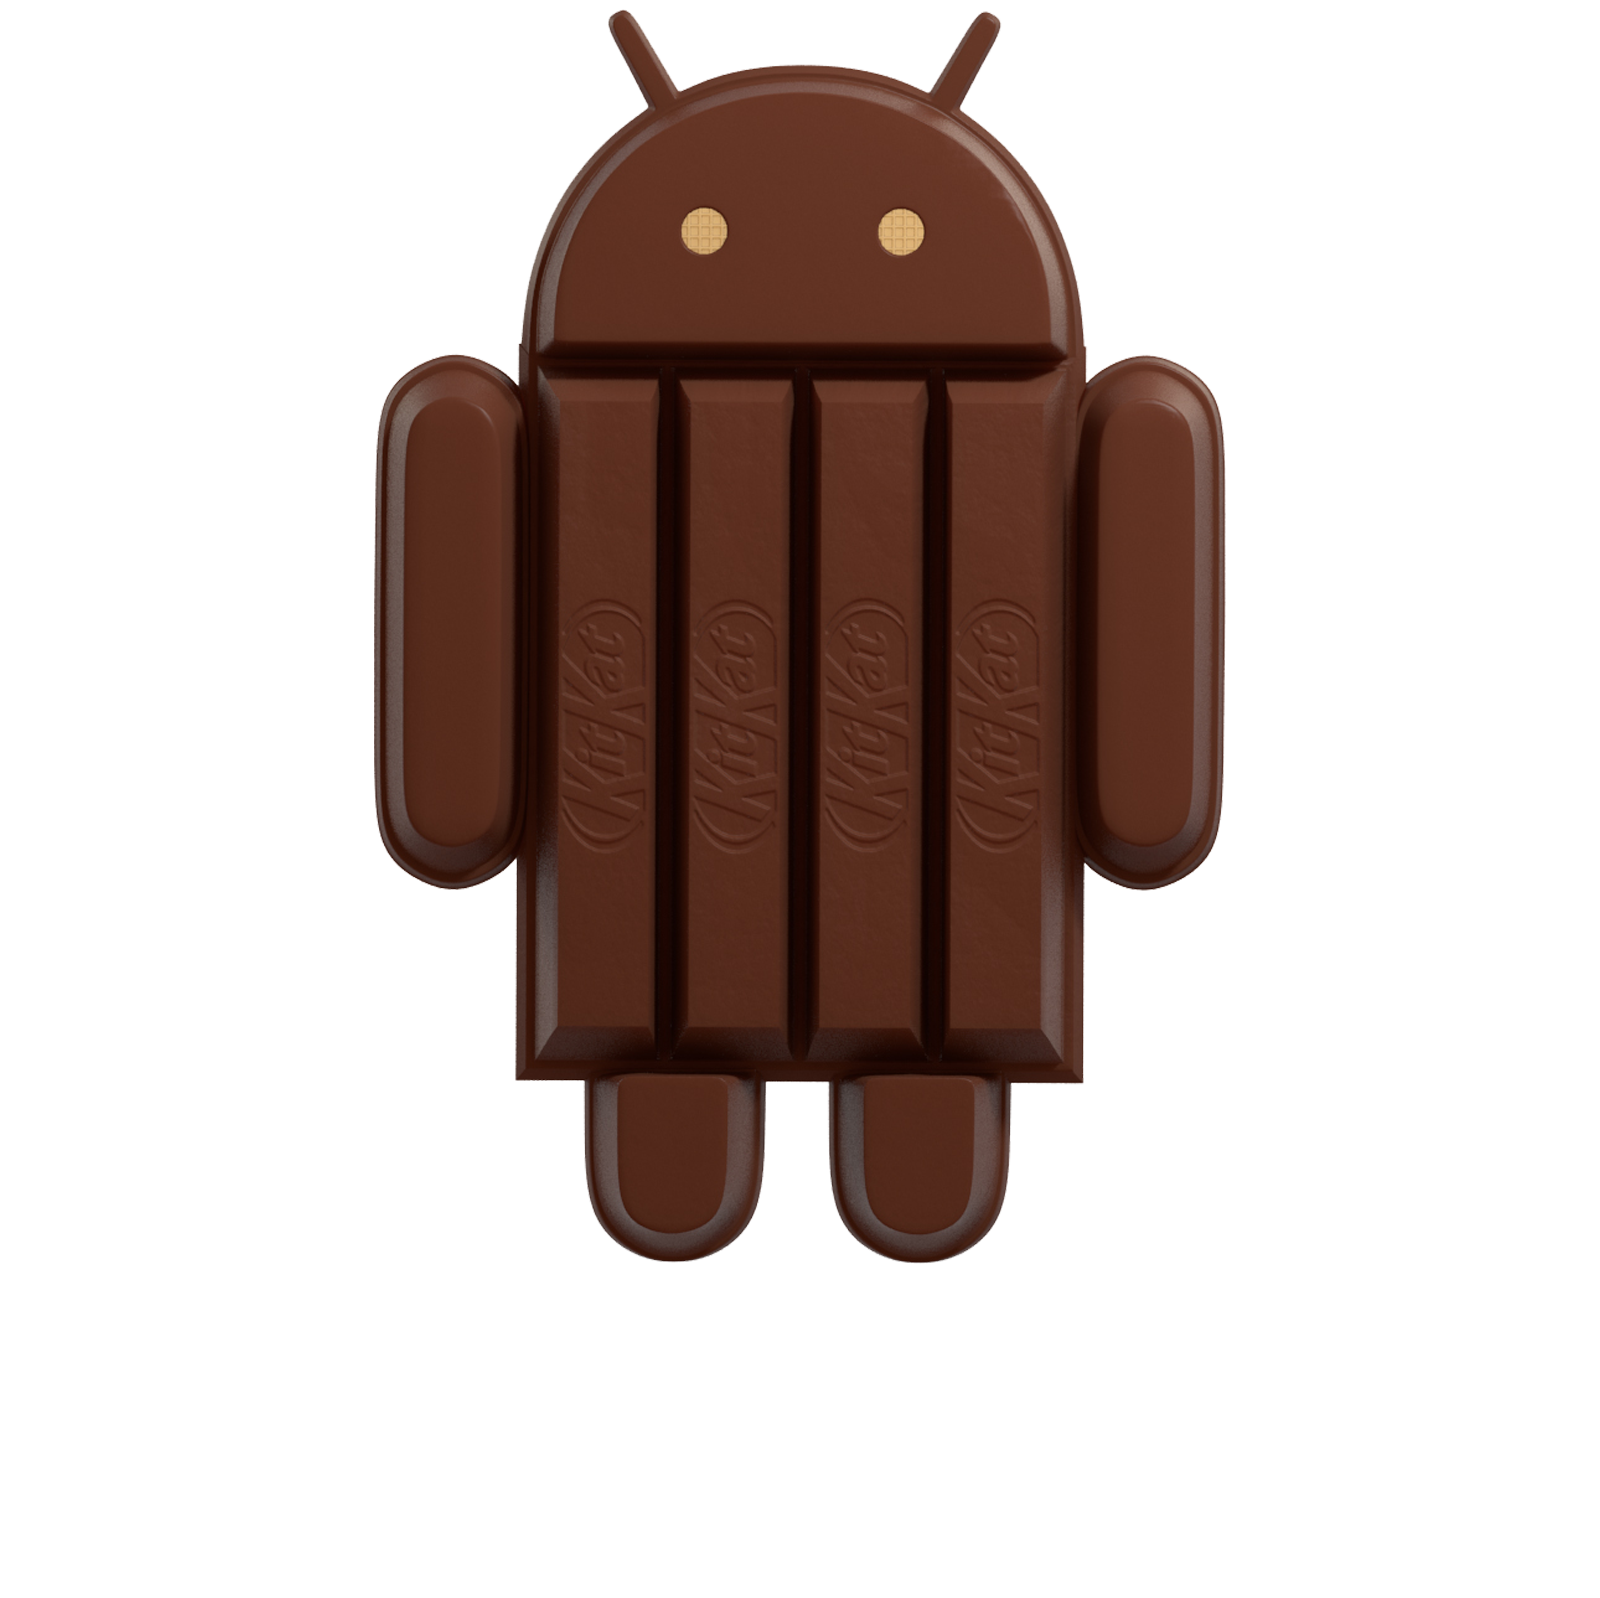 Android Kitkat Logo Png 1 PNG Image